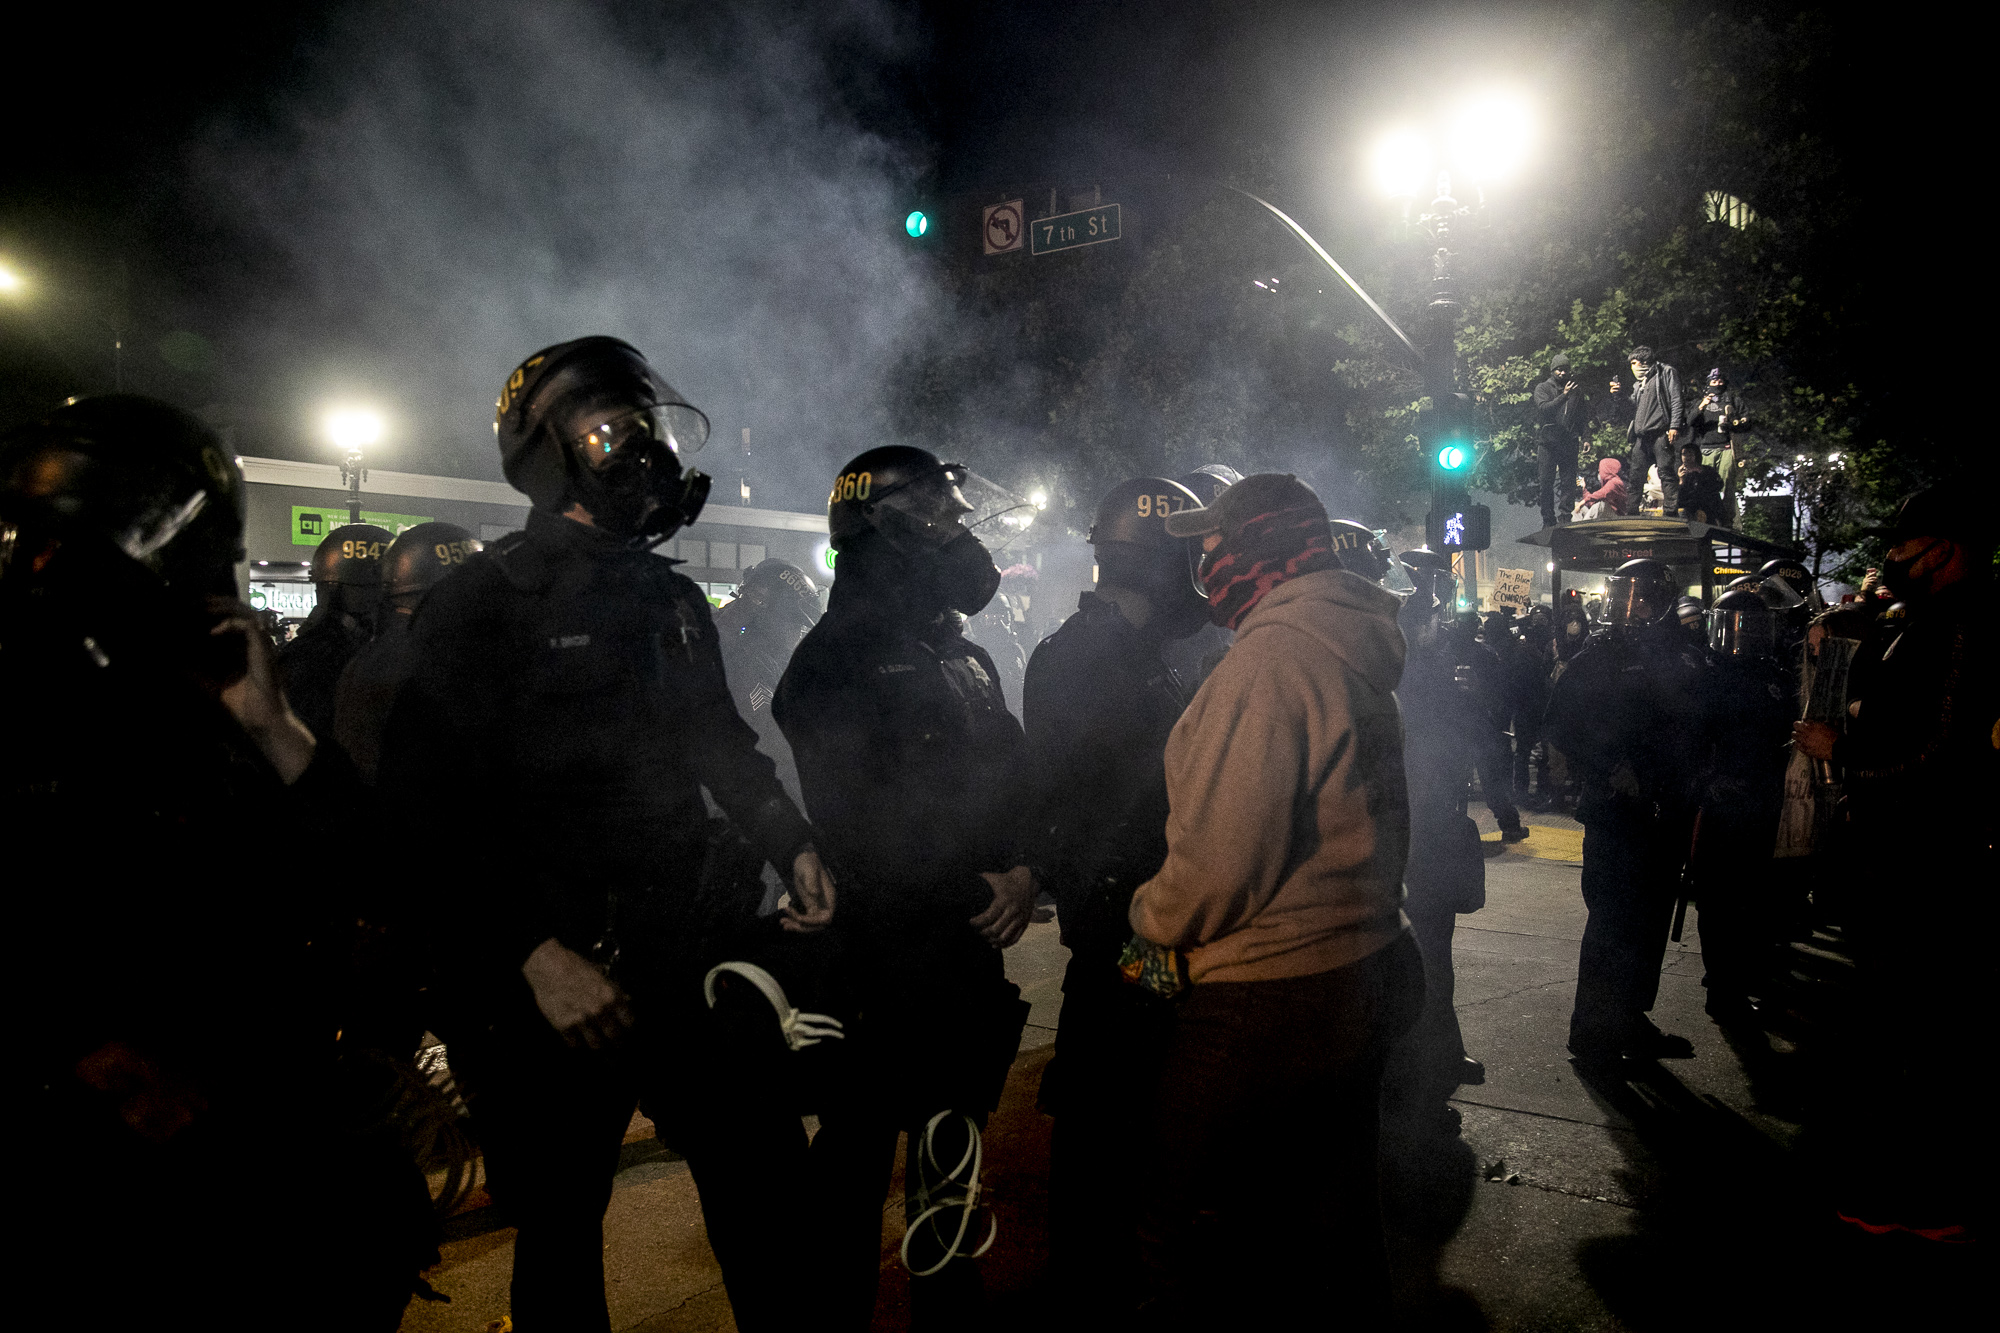 A protester stands off against police during a demonstration May 29, 2020 Downtown Oakland. Thousands took to the streets Friday night in solidarity with protesters in Minneapolis against the killing of George Floyd by Minneapolis police earlier this week. Photo by Anne Wernikoff for CalMatters